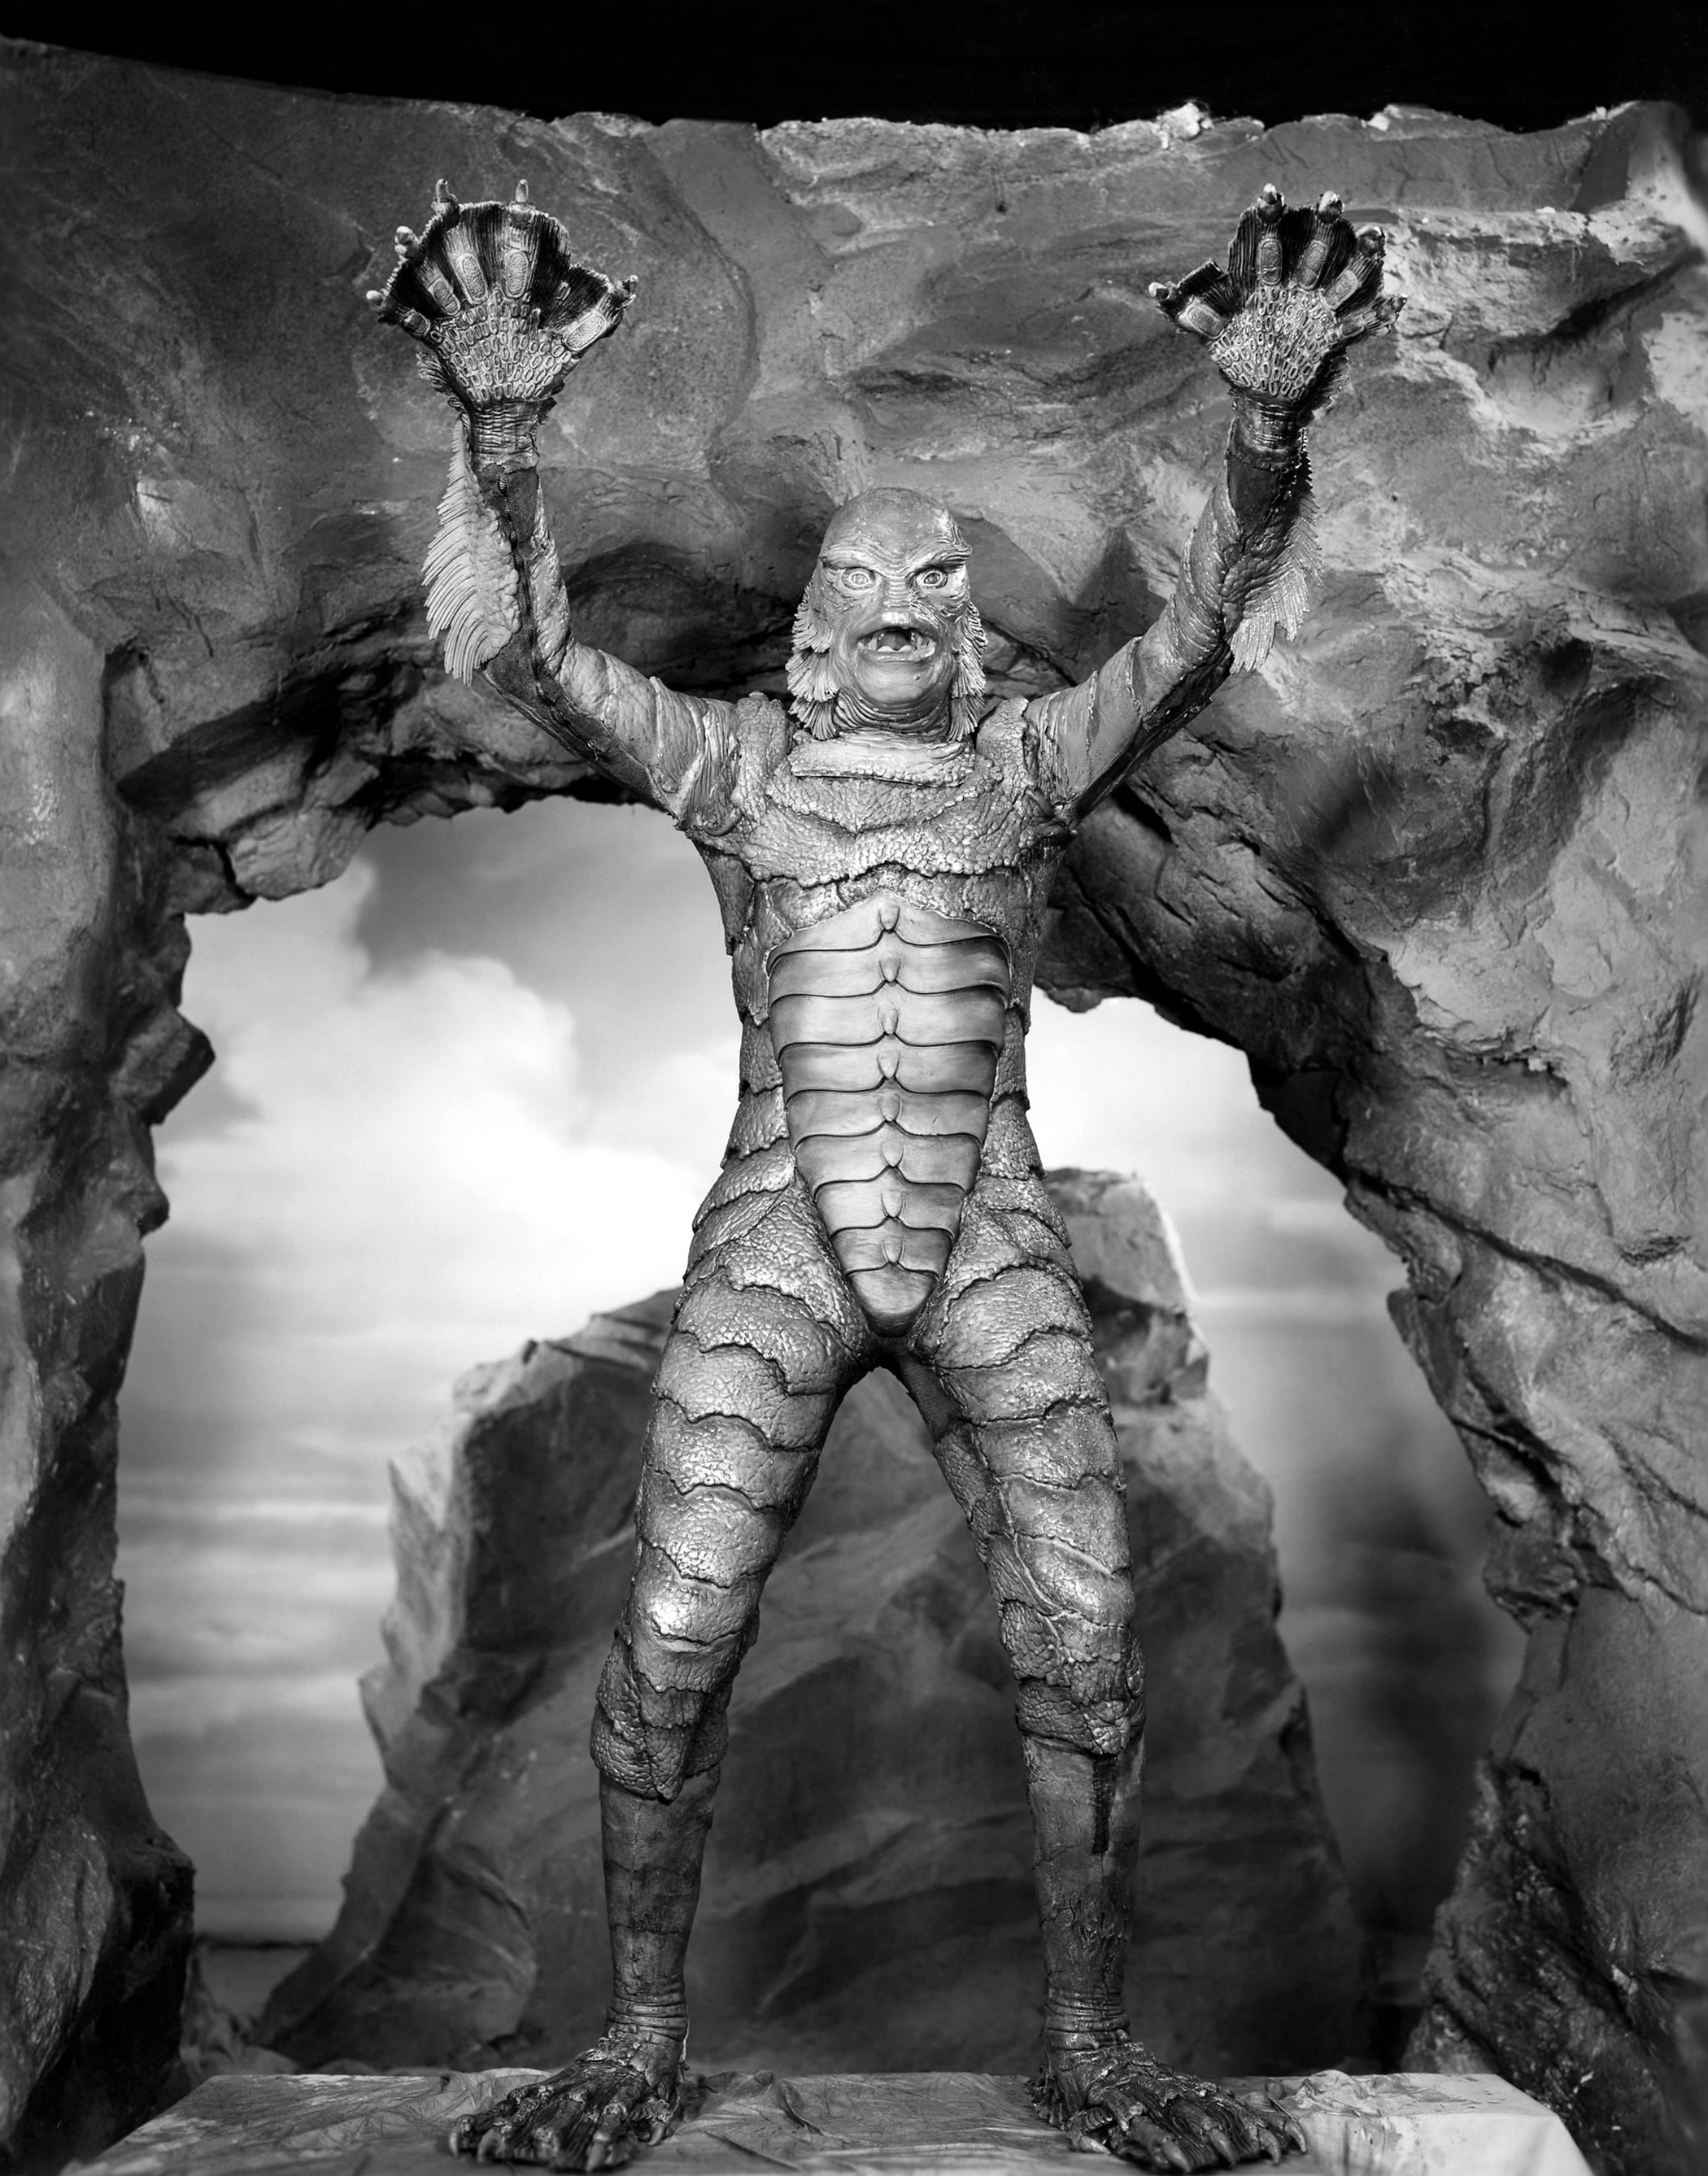 The Creature From The Black Lagoon Gillman Gill Man